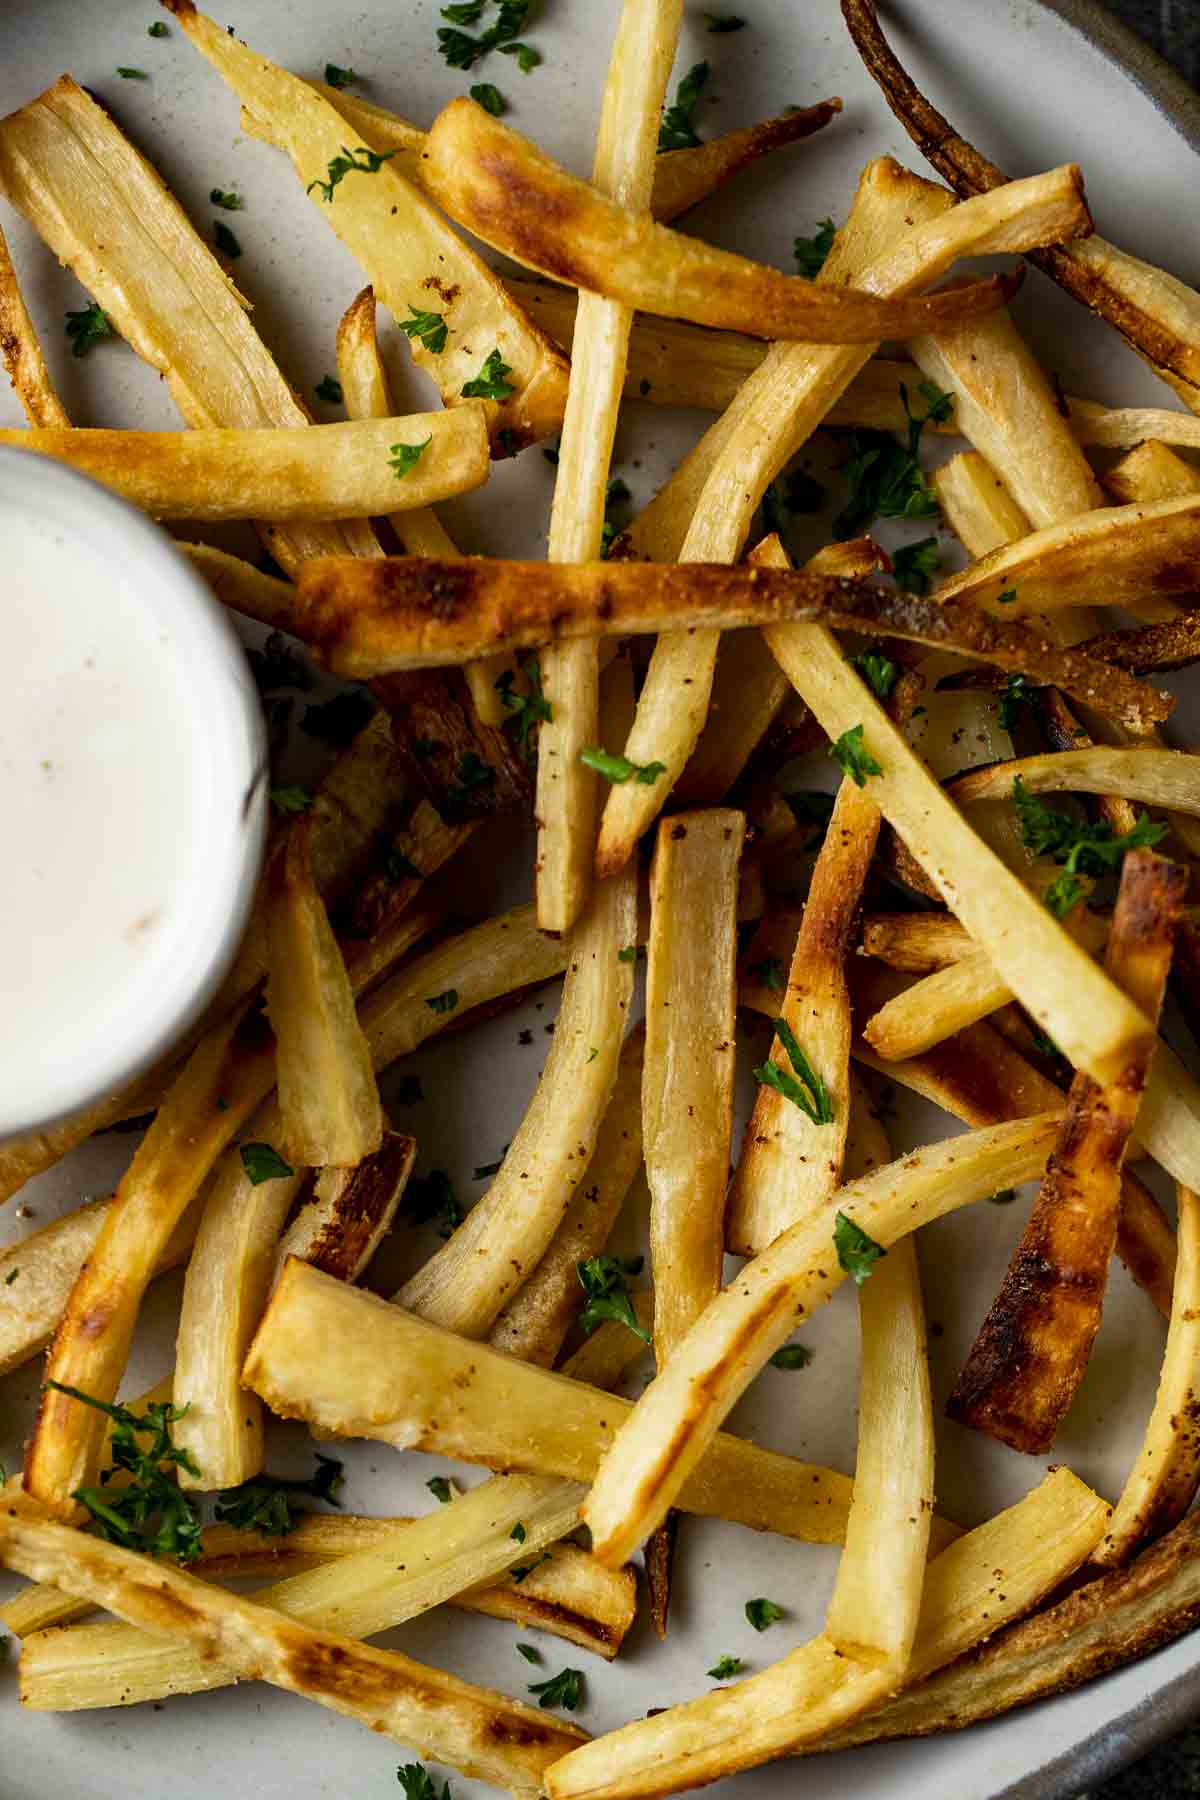 baked french fries (parsnip fries) with yogurt sauce on the side